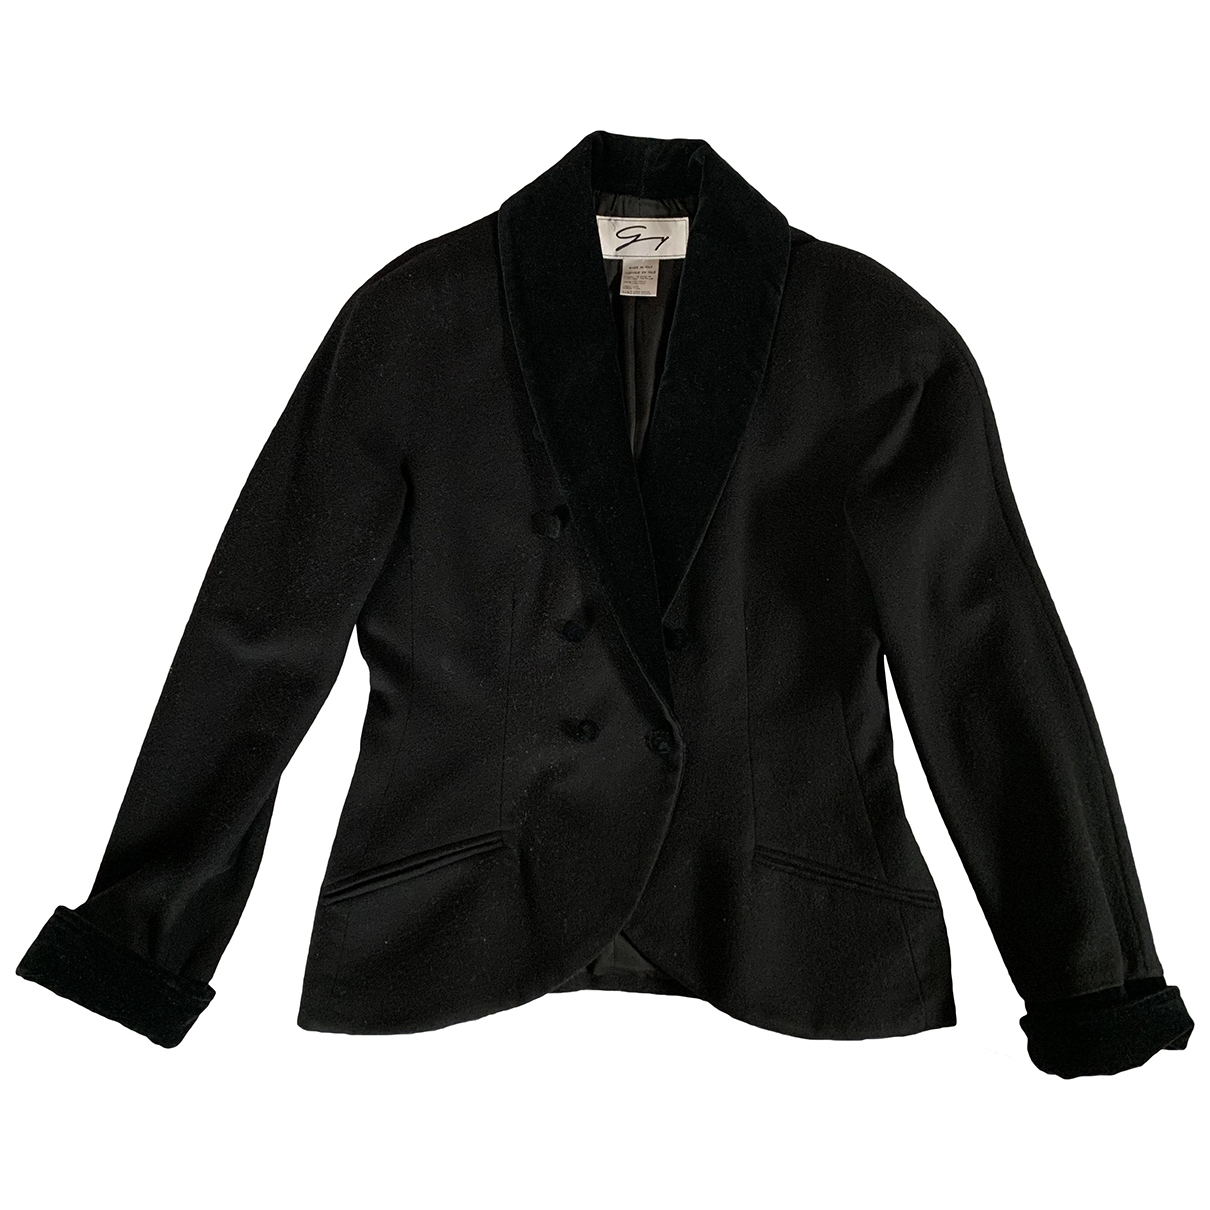 Genny \N Black Wool jacket for Women 42 IT